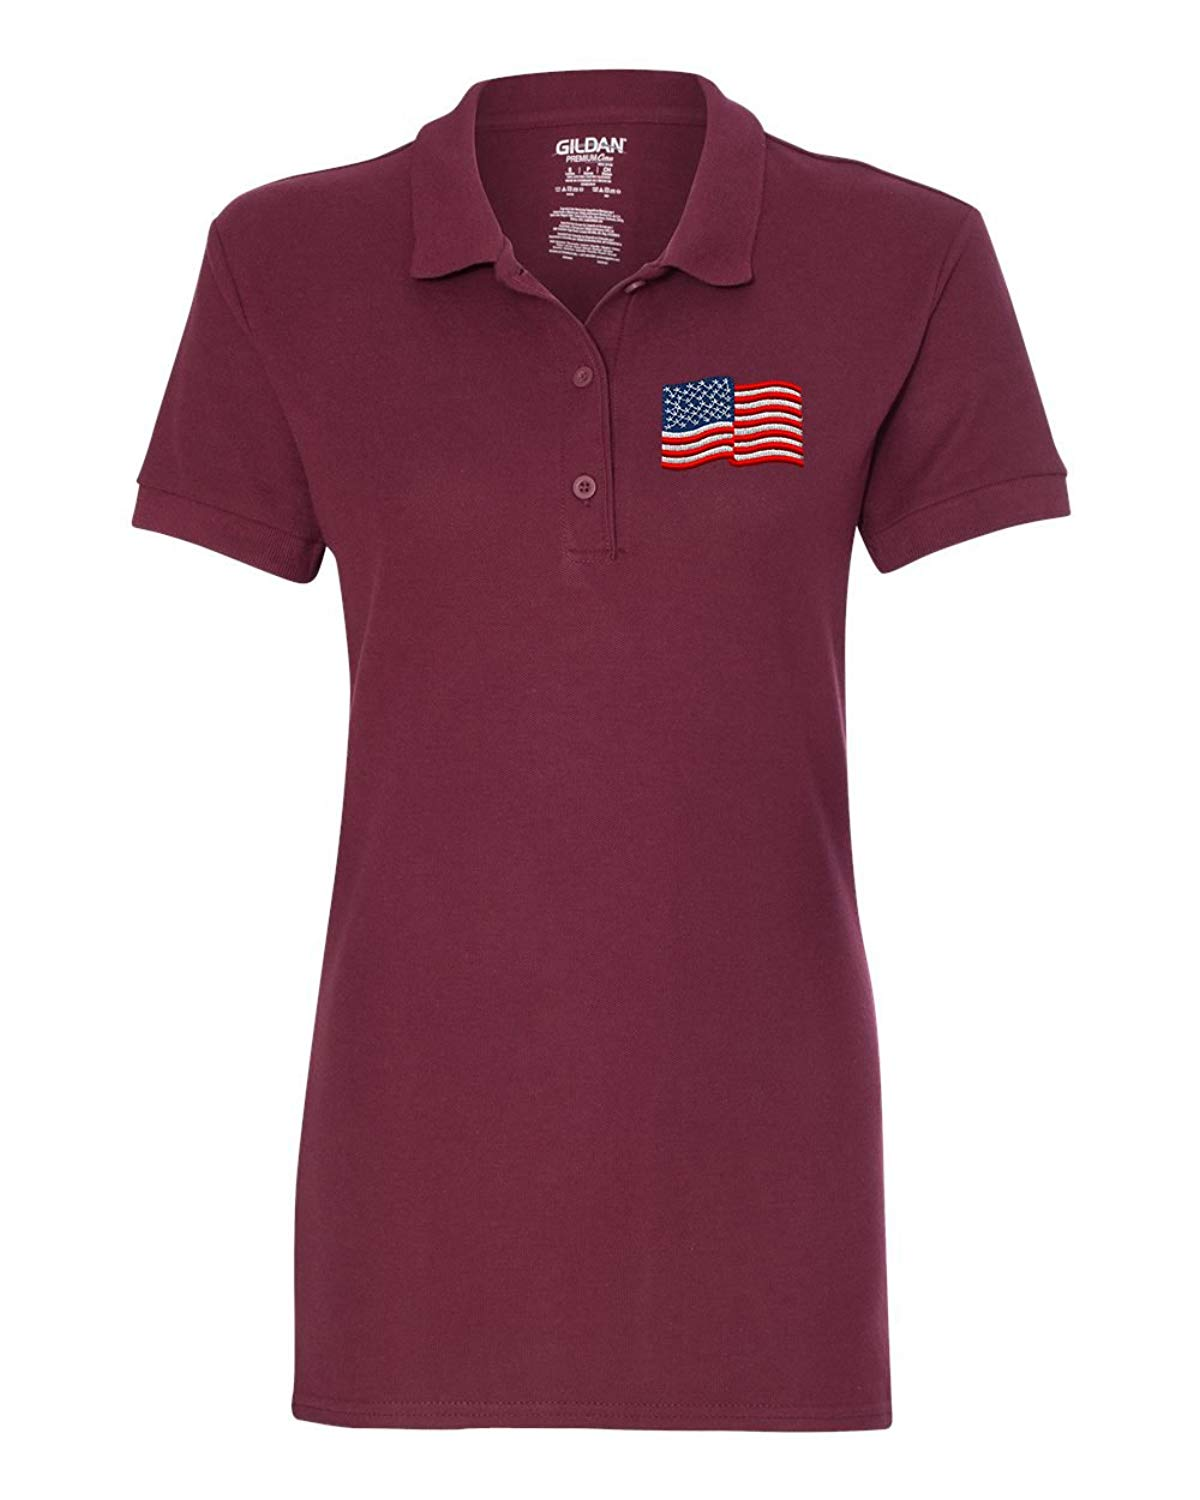 51e7fe42 Get Quotations · American Flag Custom Personalized Embroidery Embroidered  Golf WOMEN Polo Shirt